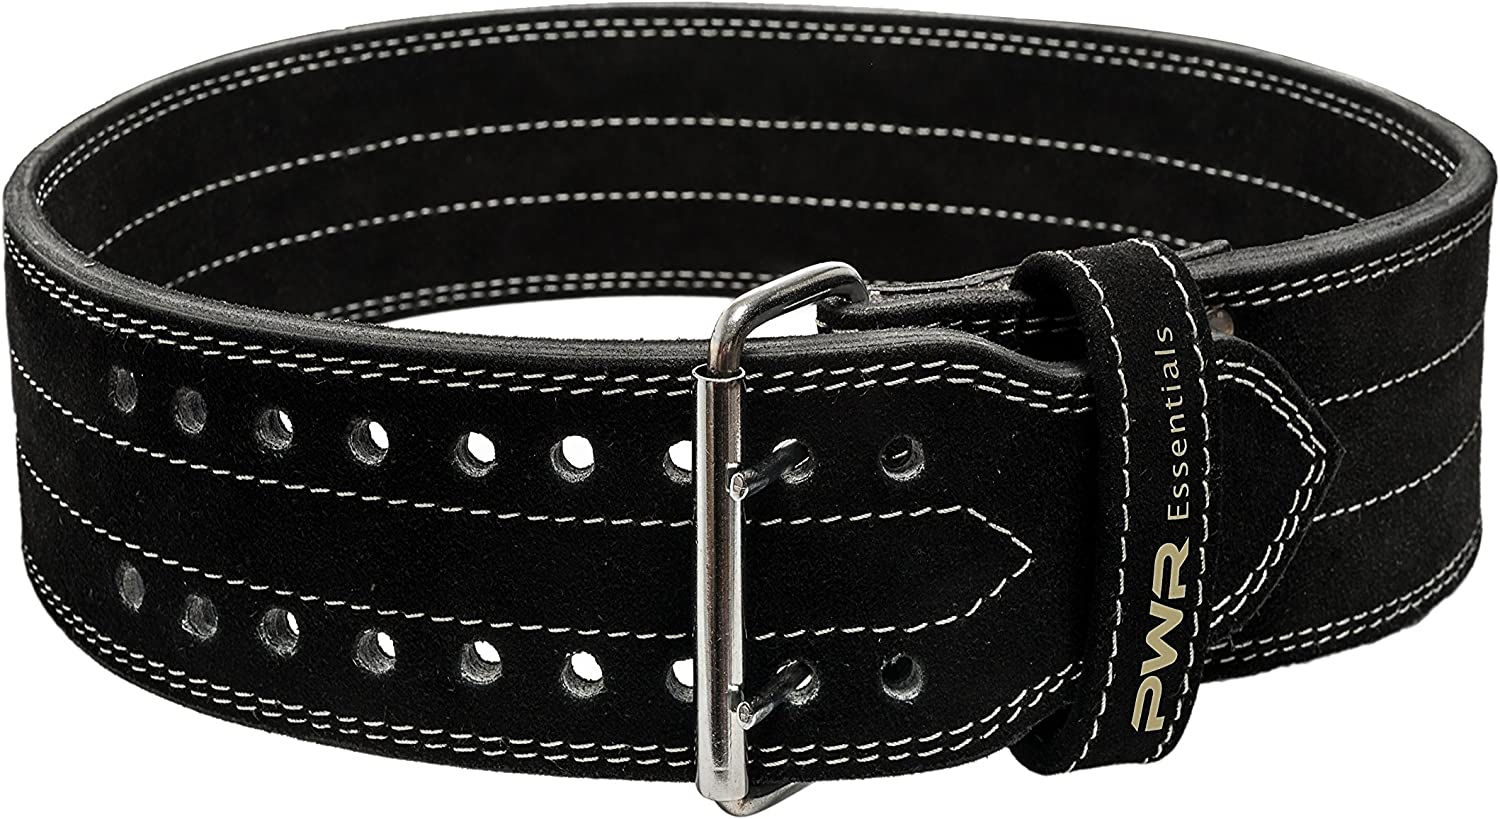 (XL, Double Prong Buckle) - PWR Essentials Leather Weightlifting Belt (Black) Wide Olympic Style Powerlifting, Gym, CrossFit, Exercise Back Support Heavy Duty Men Women